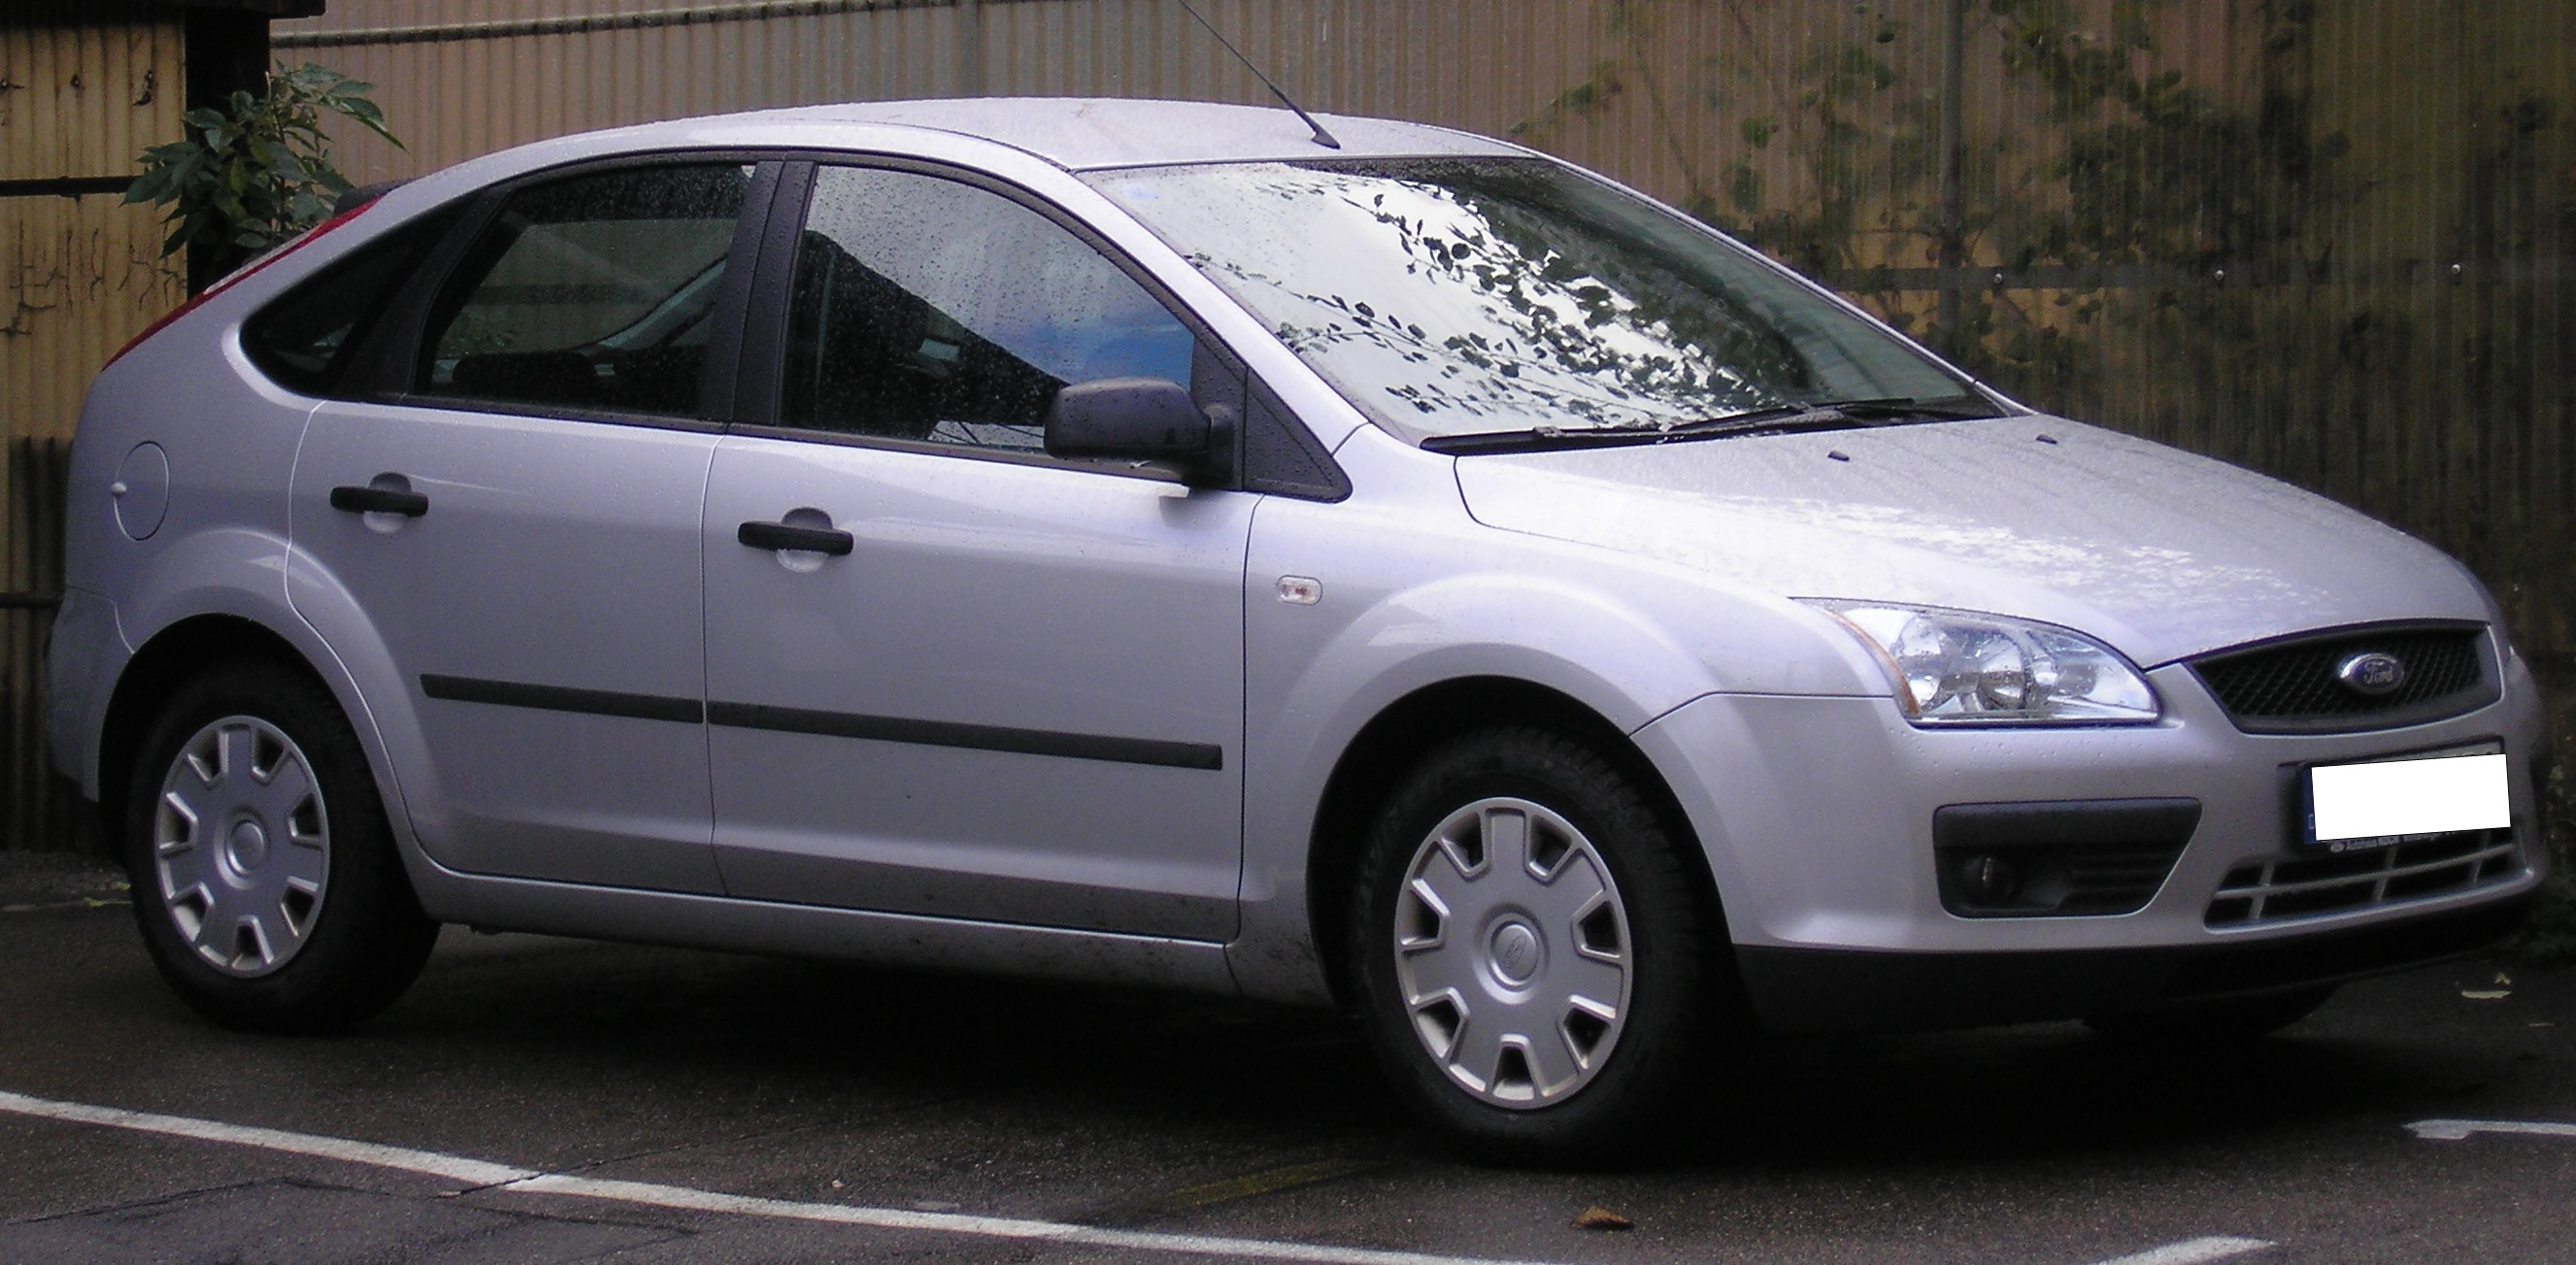 2006 ford focus image 9